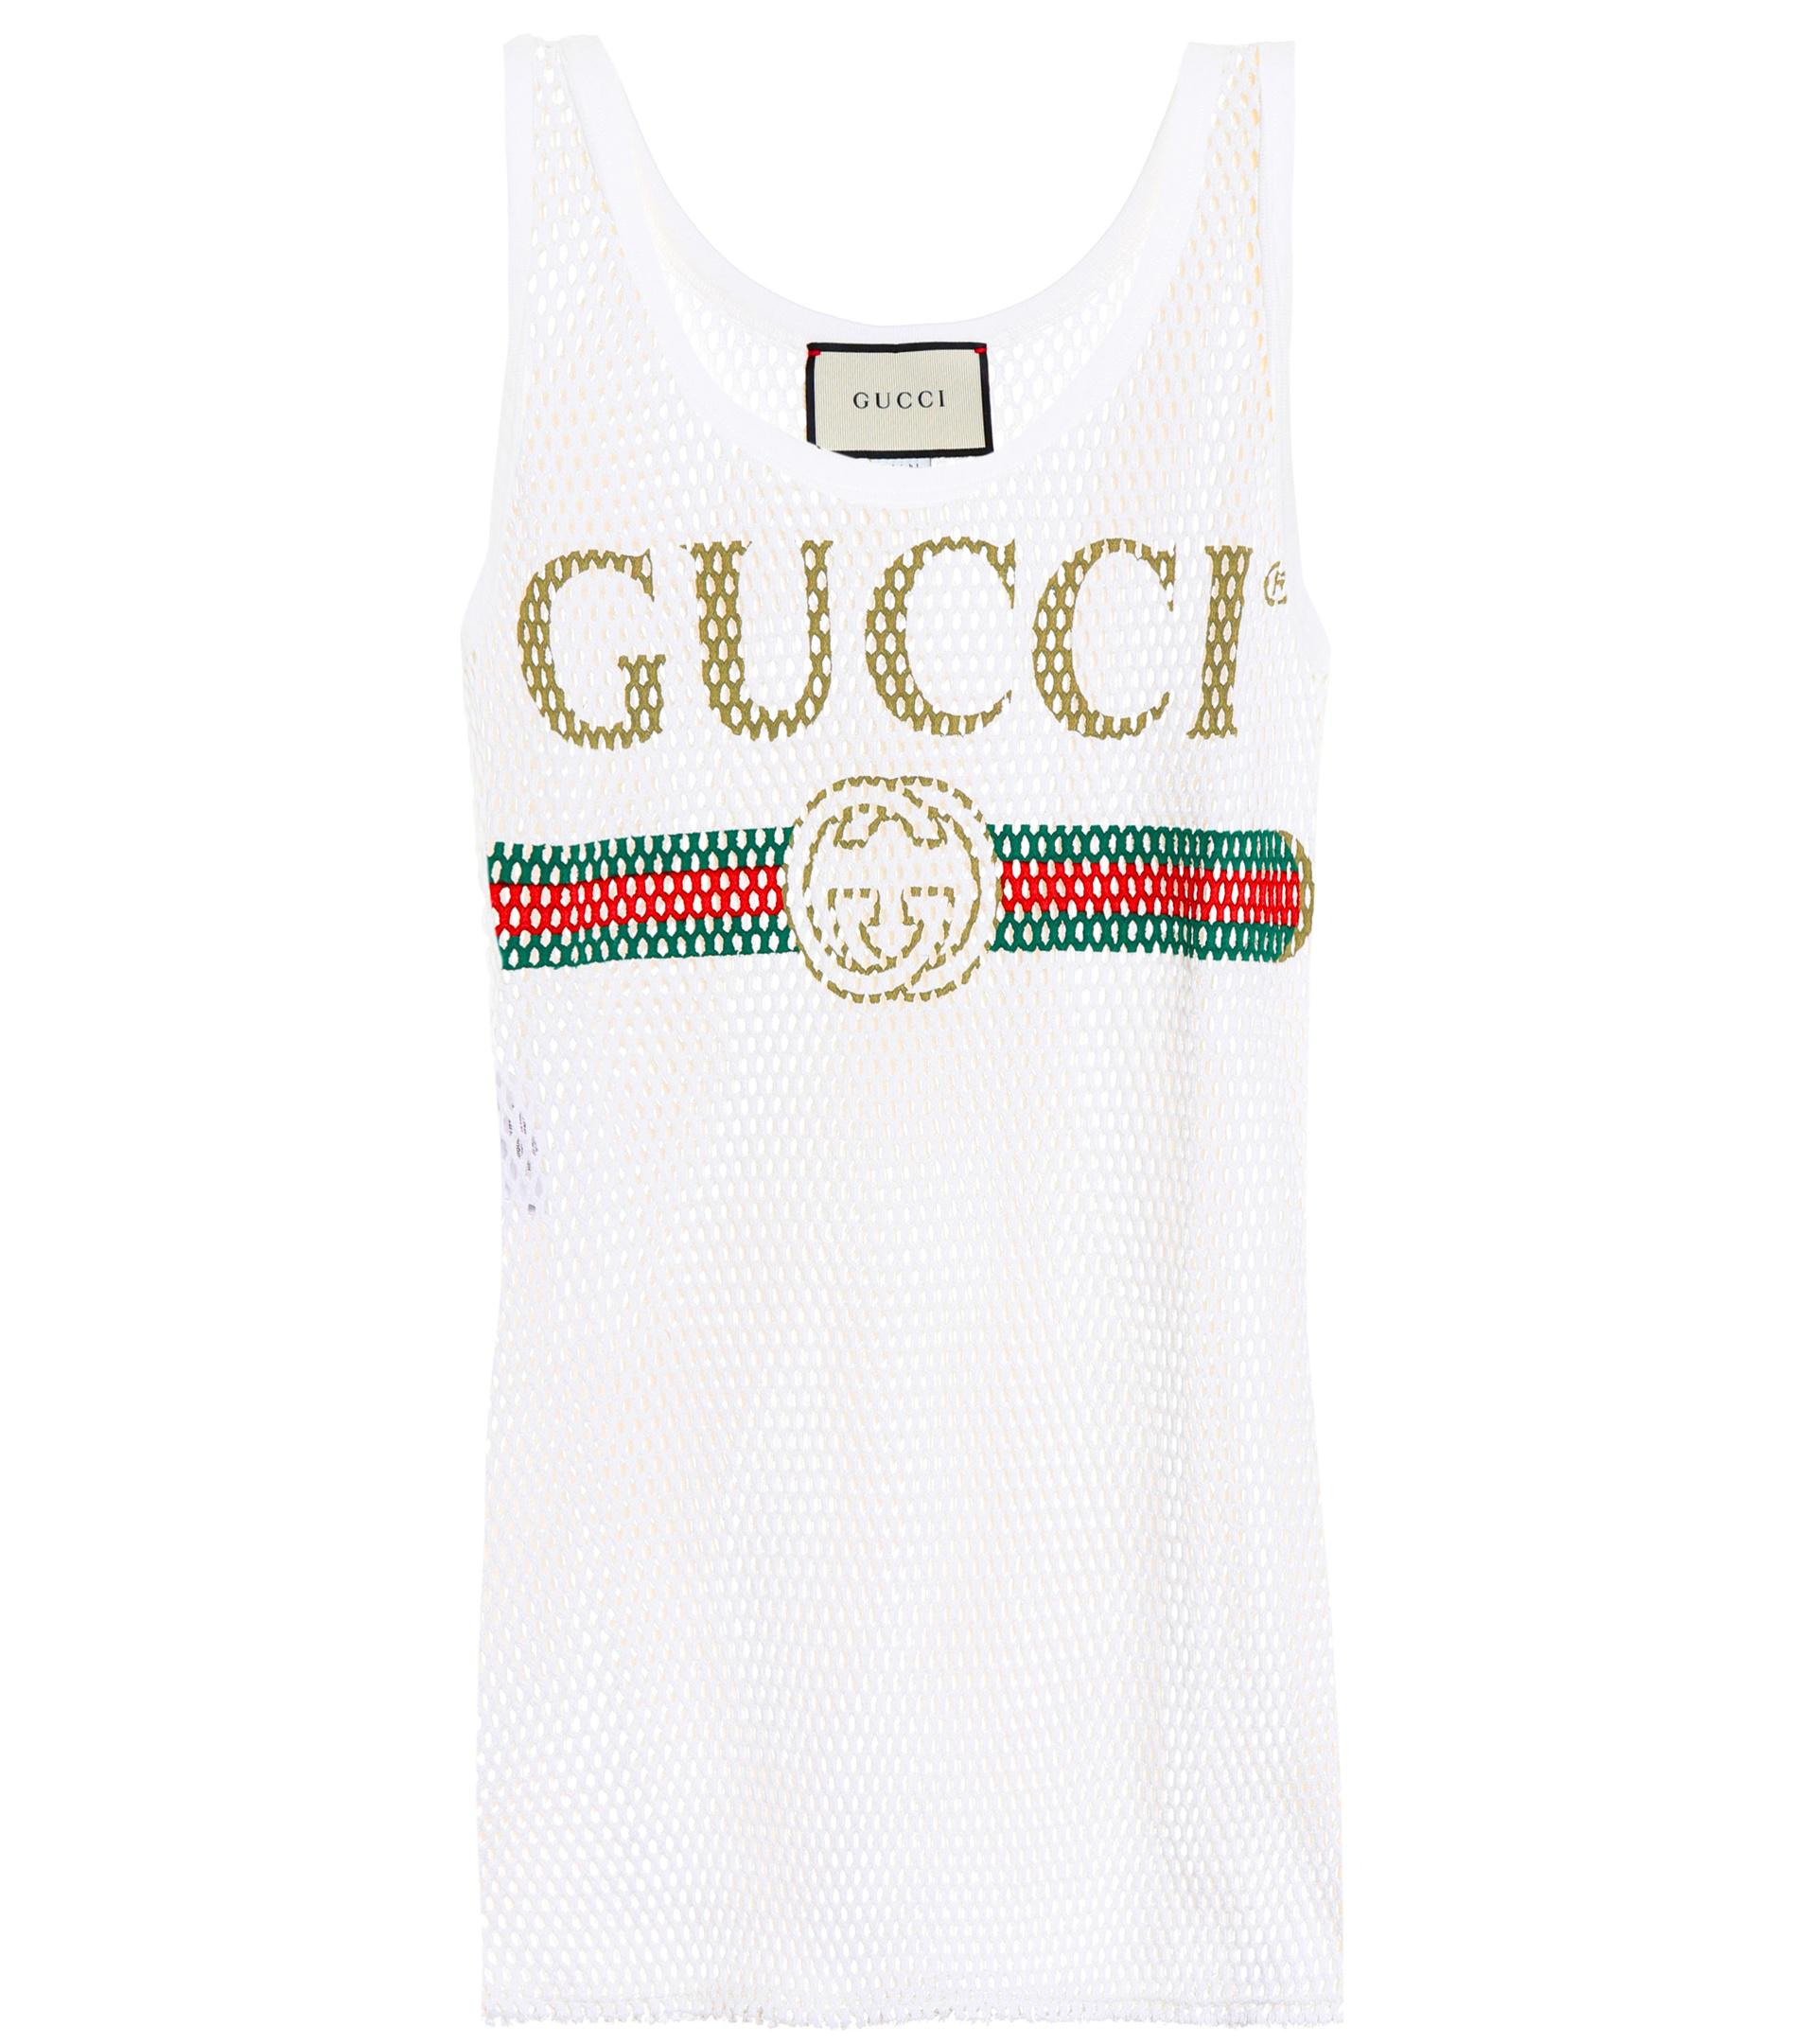 0a0c3624db06 Gucci Mesh Cotton Tank Top in White - Lyst